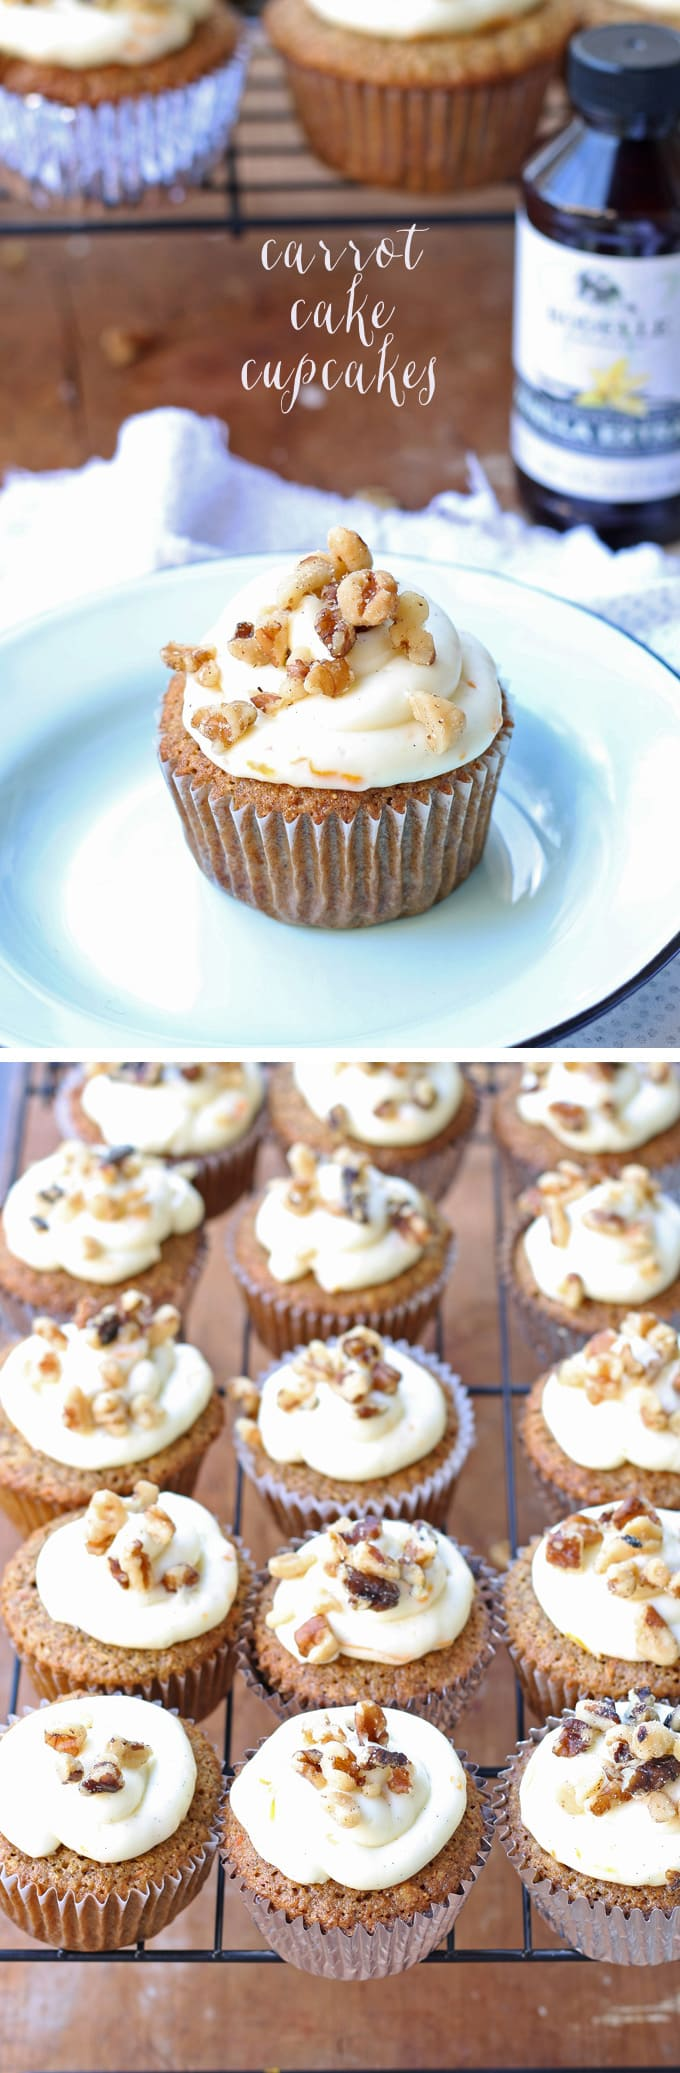 Delicious carrot cake cupcakes, filled and topped with sweet cream cheese frosting! | honeyandbirch.com